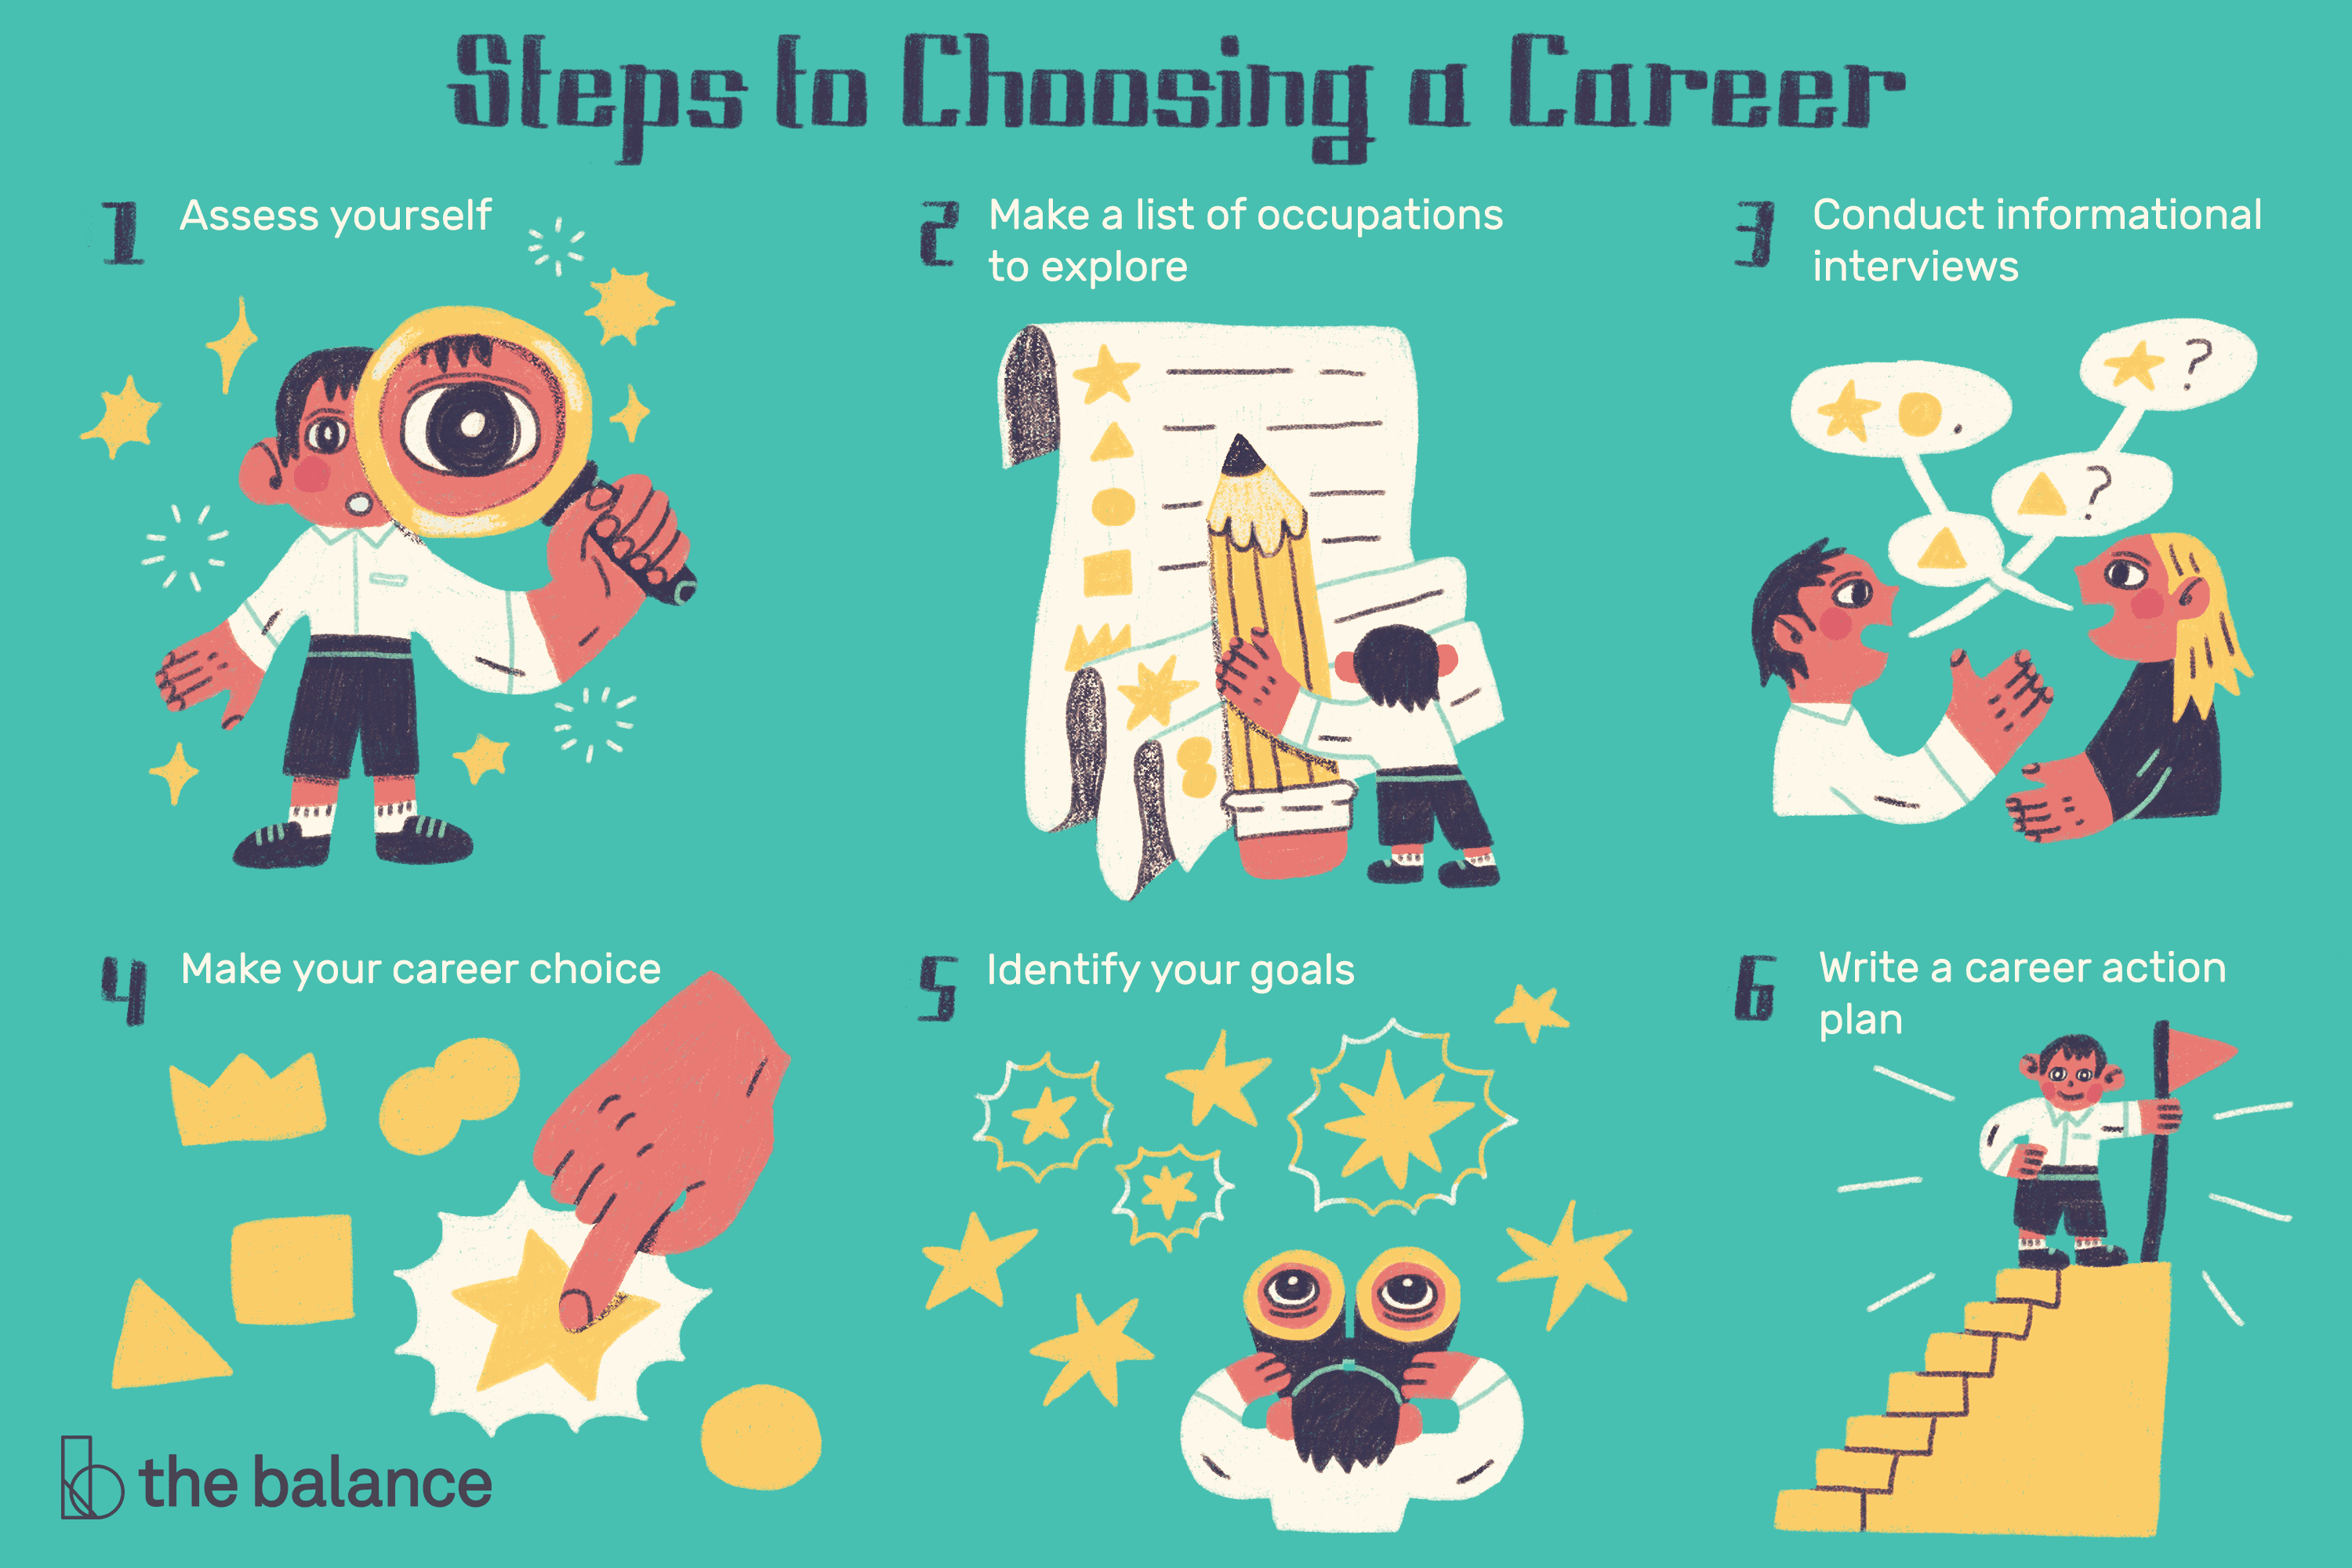 How To Make A Career Choice When You Are Undecided